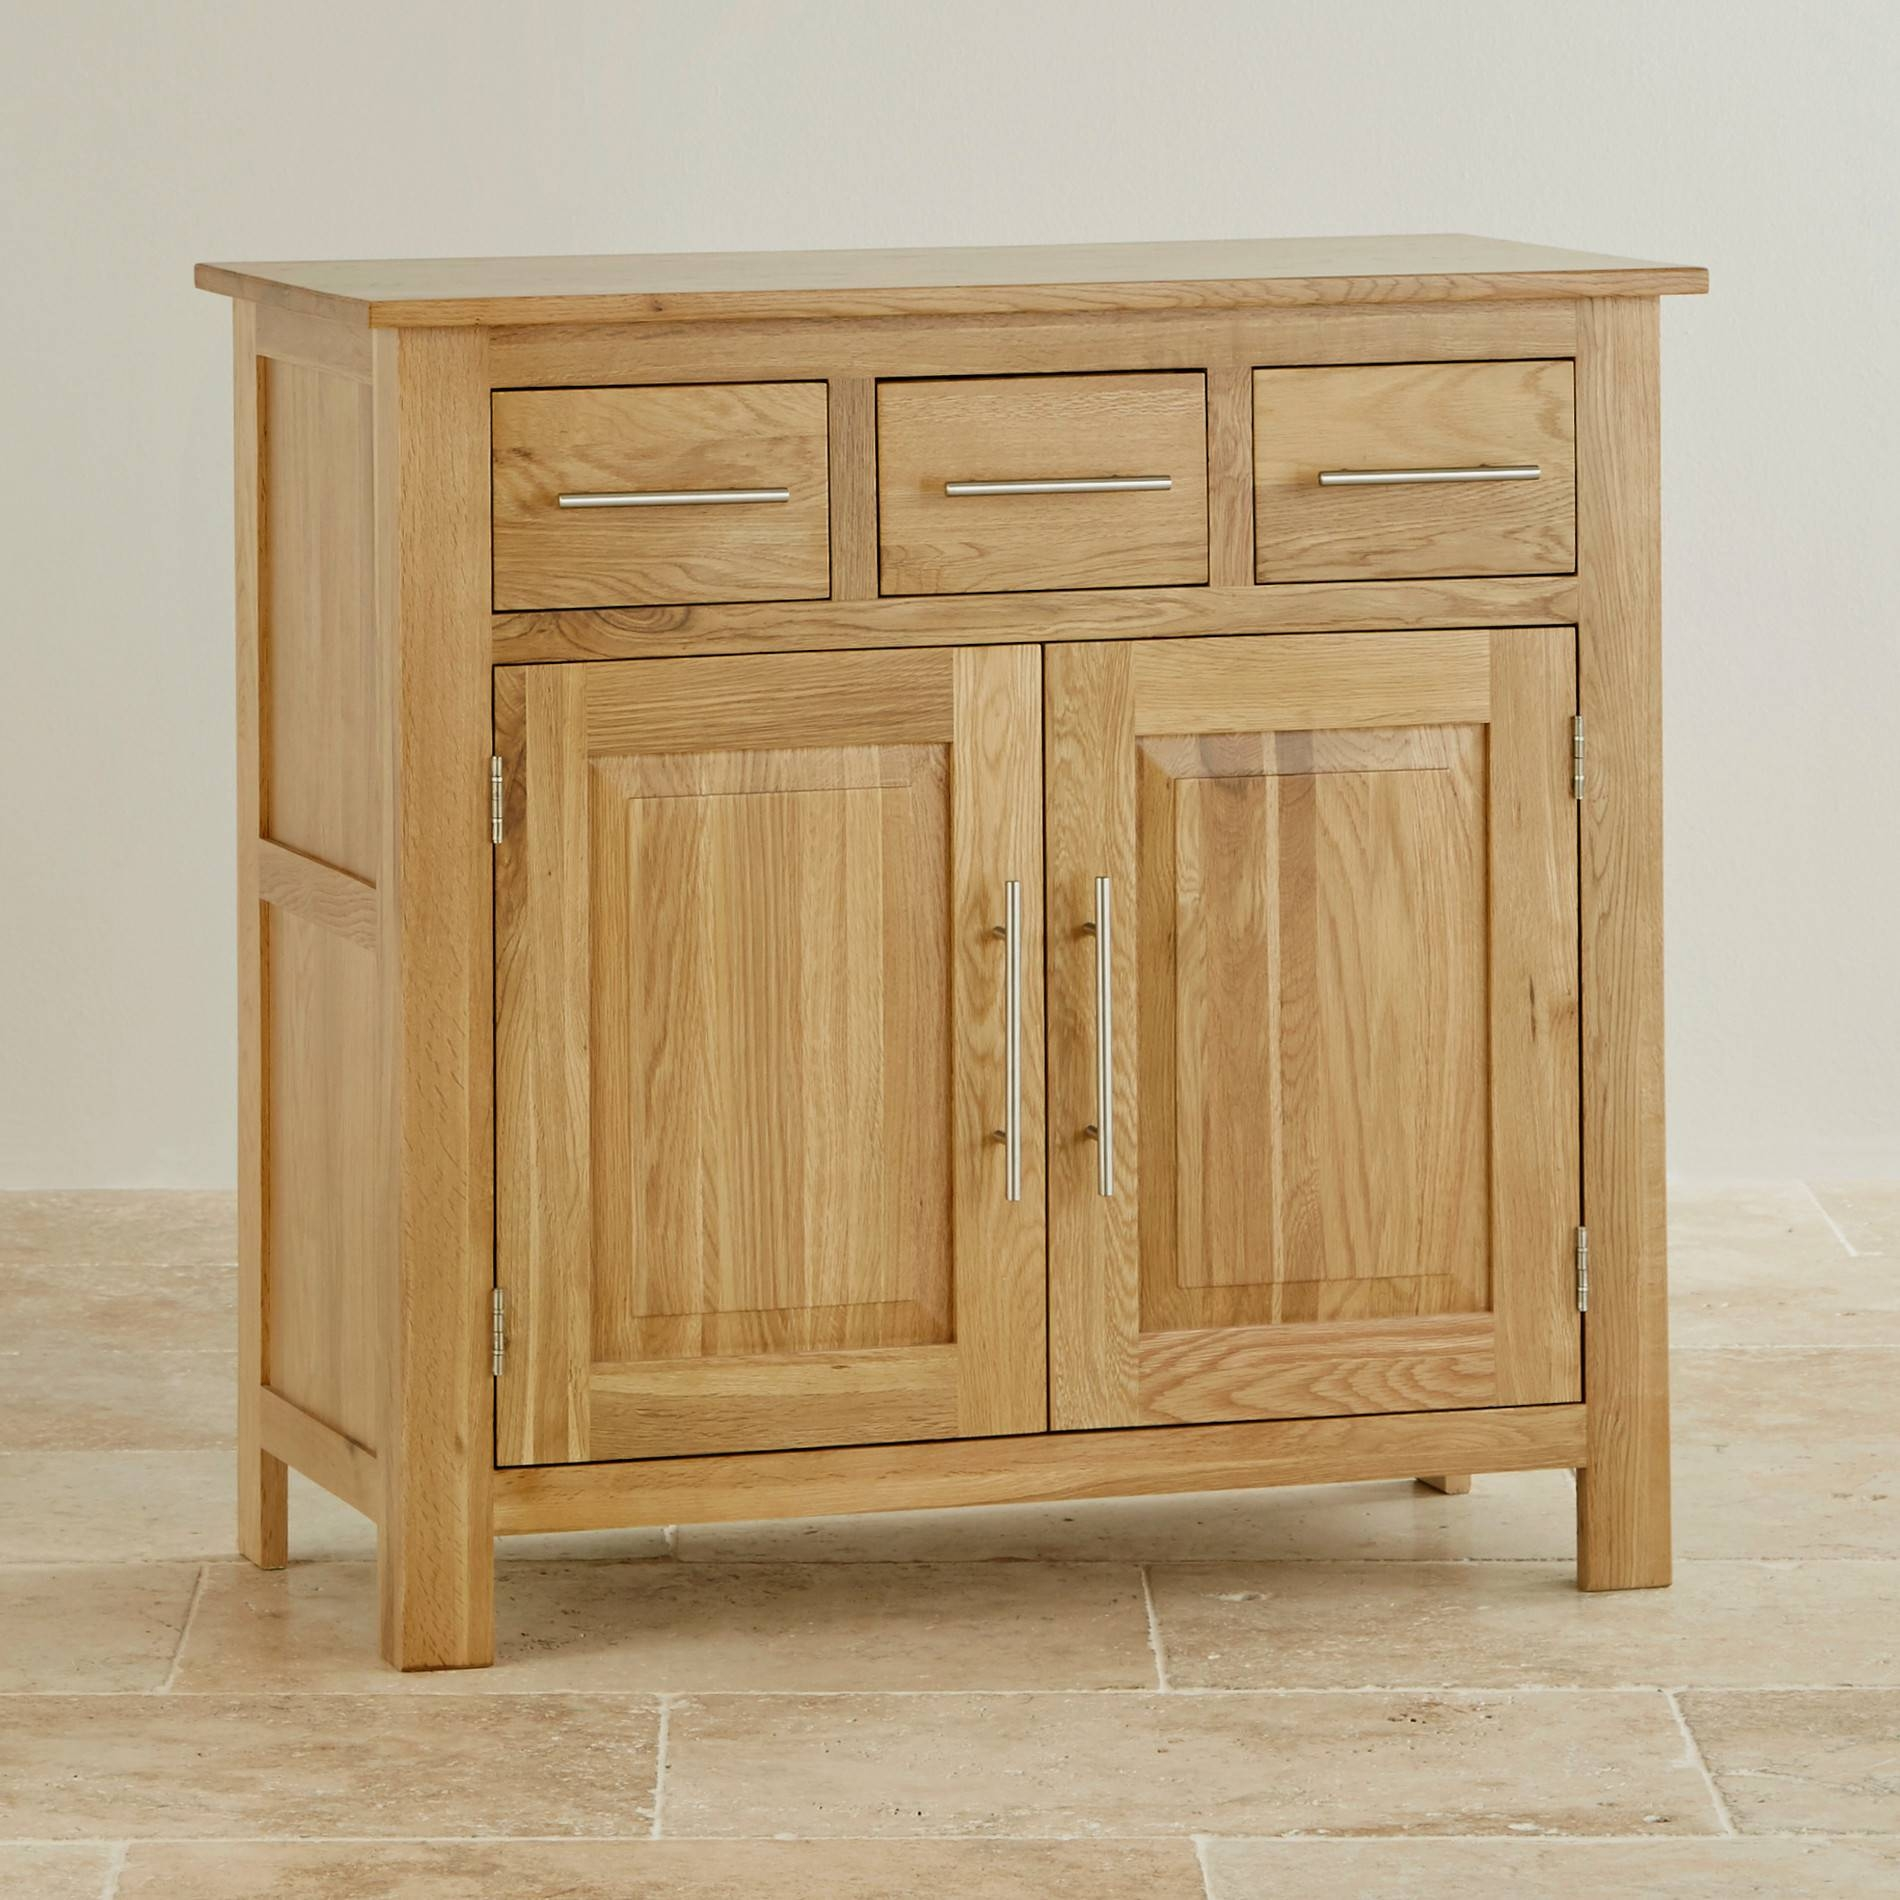 Rivermead Natural Solid Oak Small Sideboard | Oak Furniture Land In Recent Solid Oak Small Sideboards (View 9 of 15)